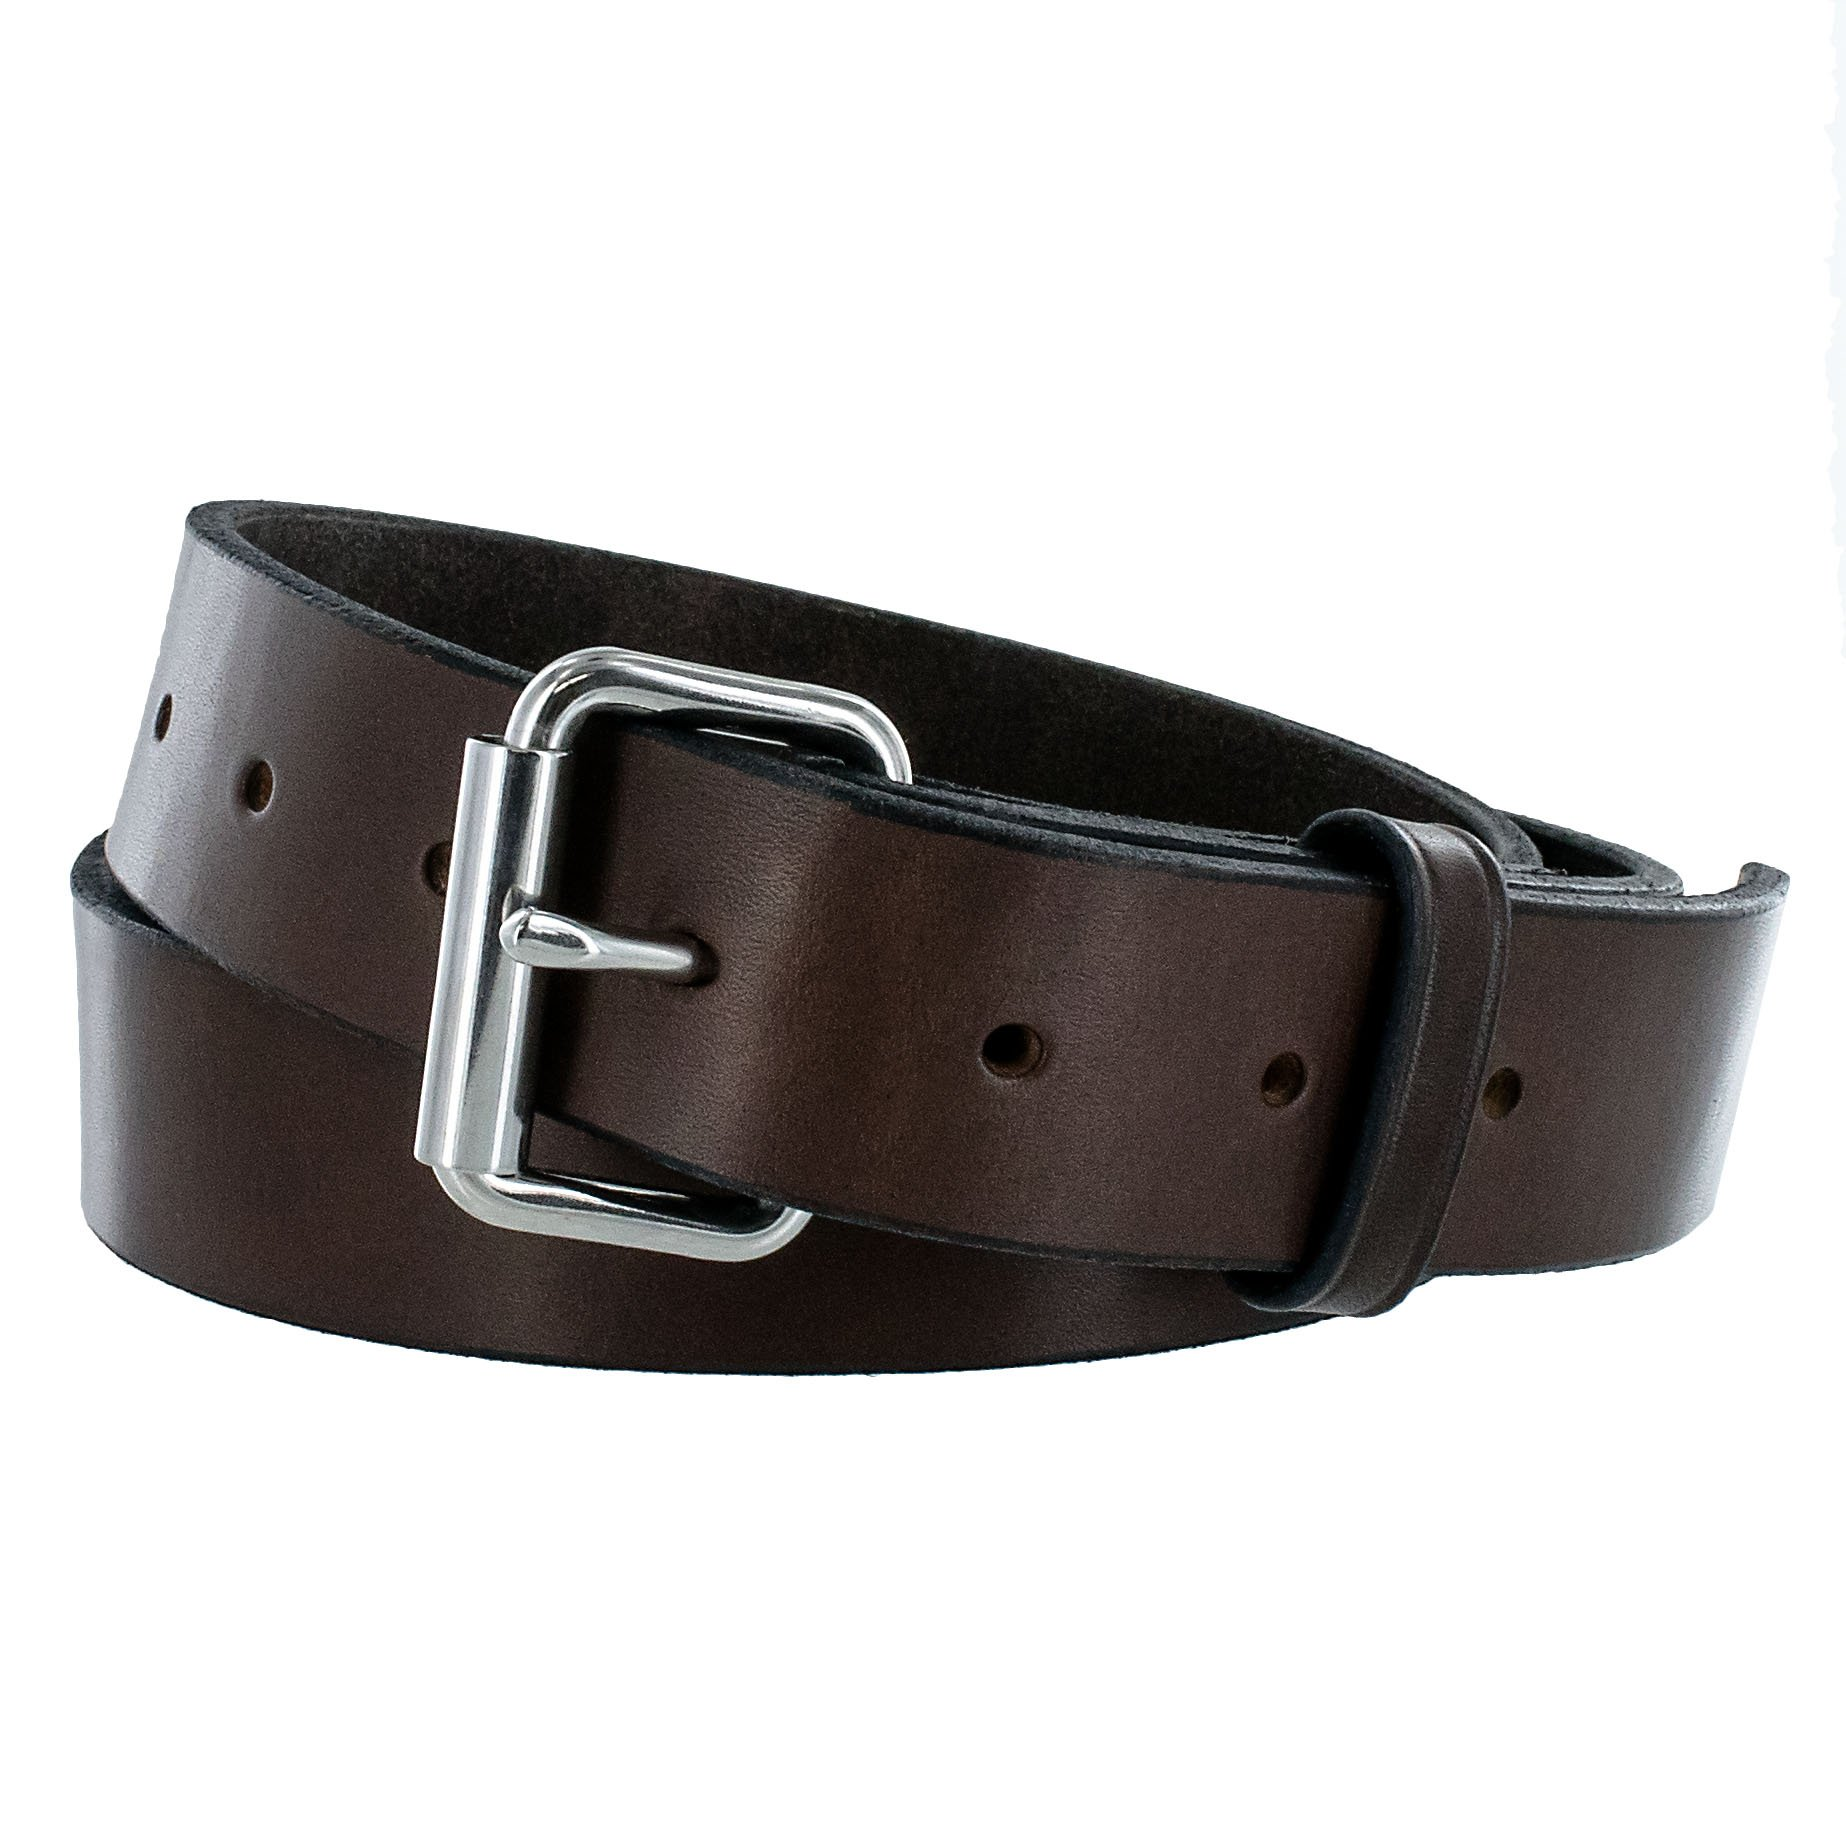 Hanks Gunner - USA Made Concealed Carry CCW Leather Gun Belt - 100 Year Warranty - 14 Ounce - Brown - 56 by Hanks Belts